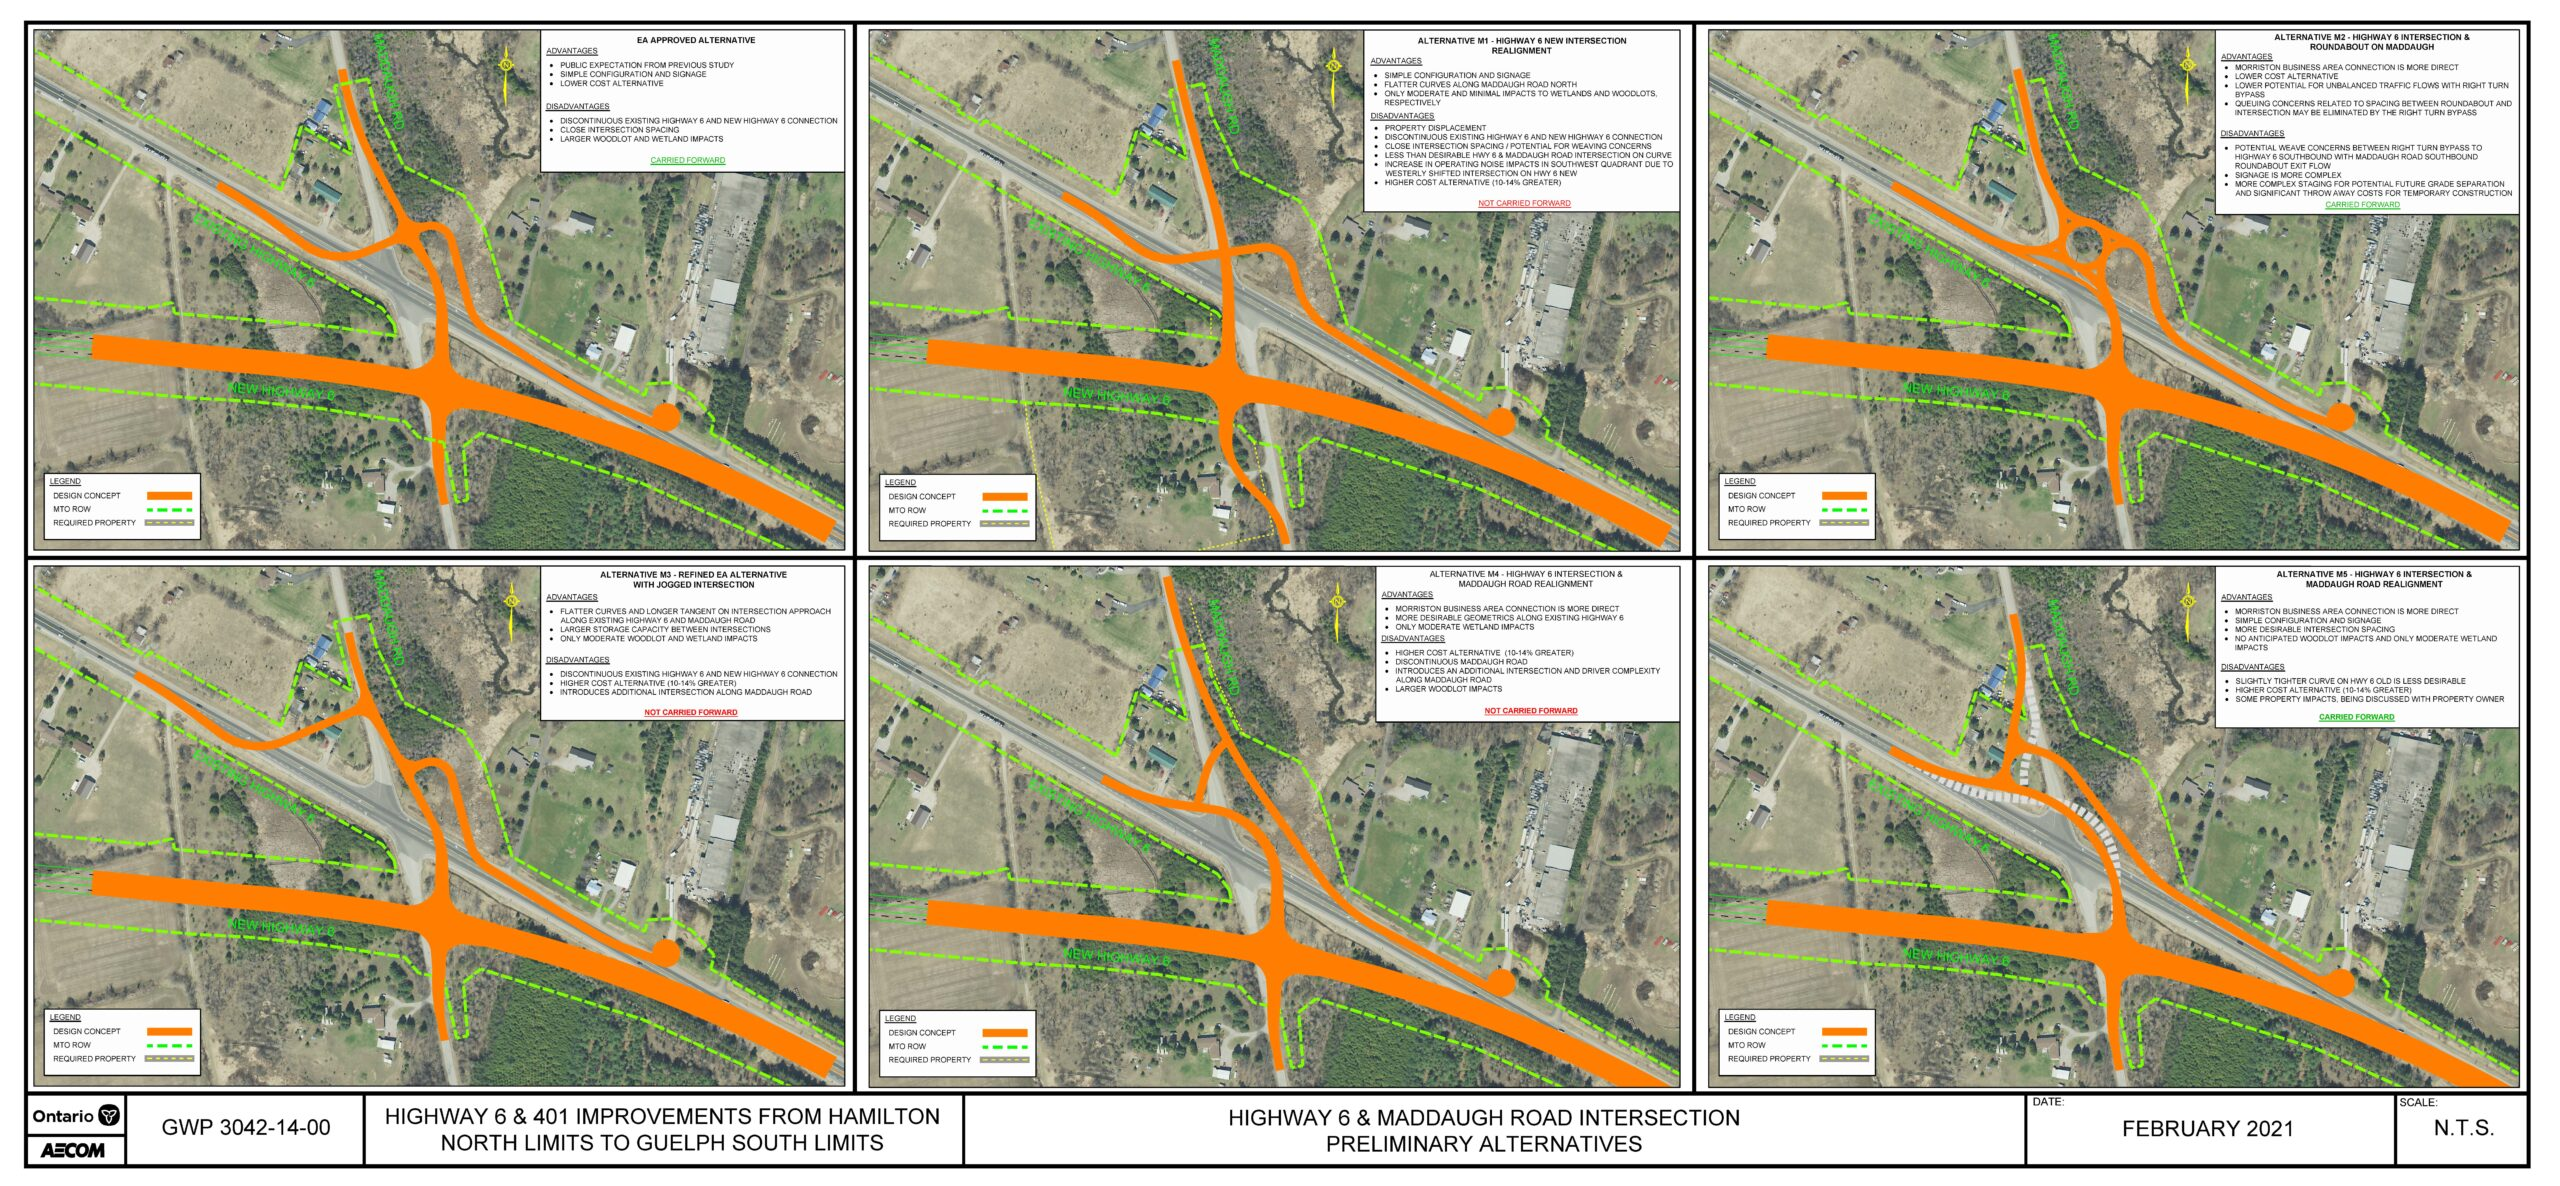 Aerial maps of the Highway 6 and Maddaugh Road Intersection Preliminary Design Alternatives